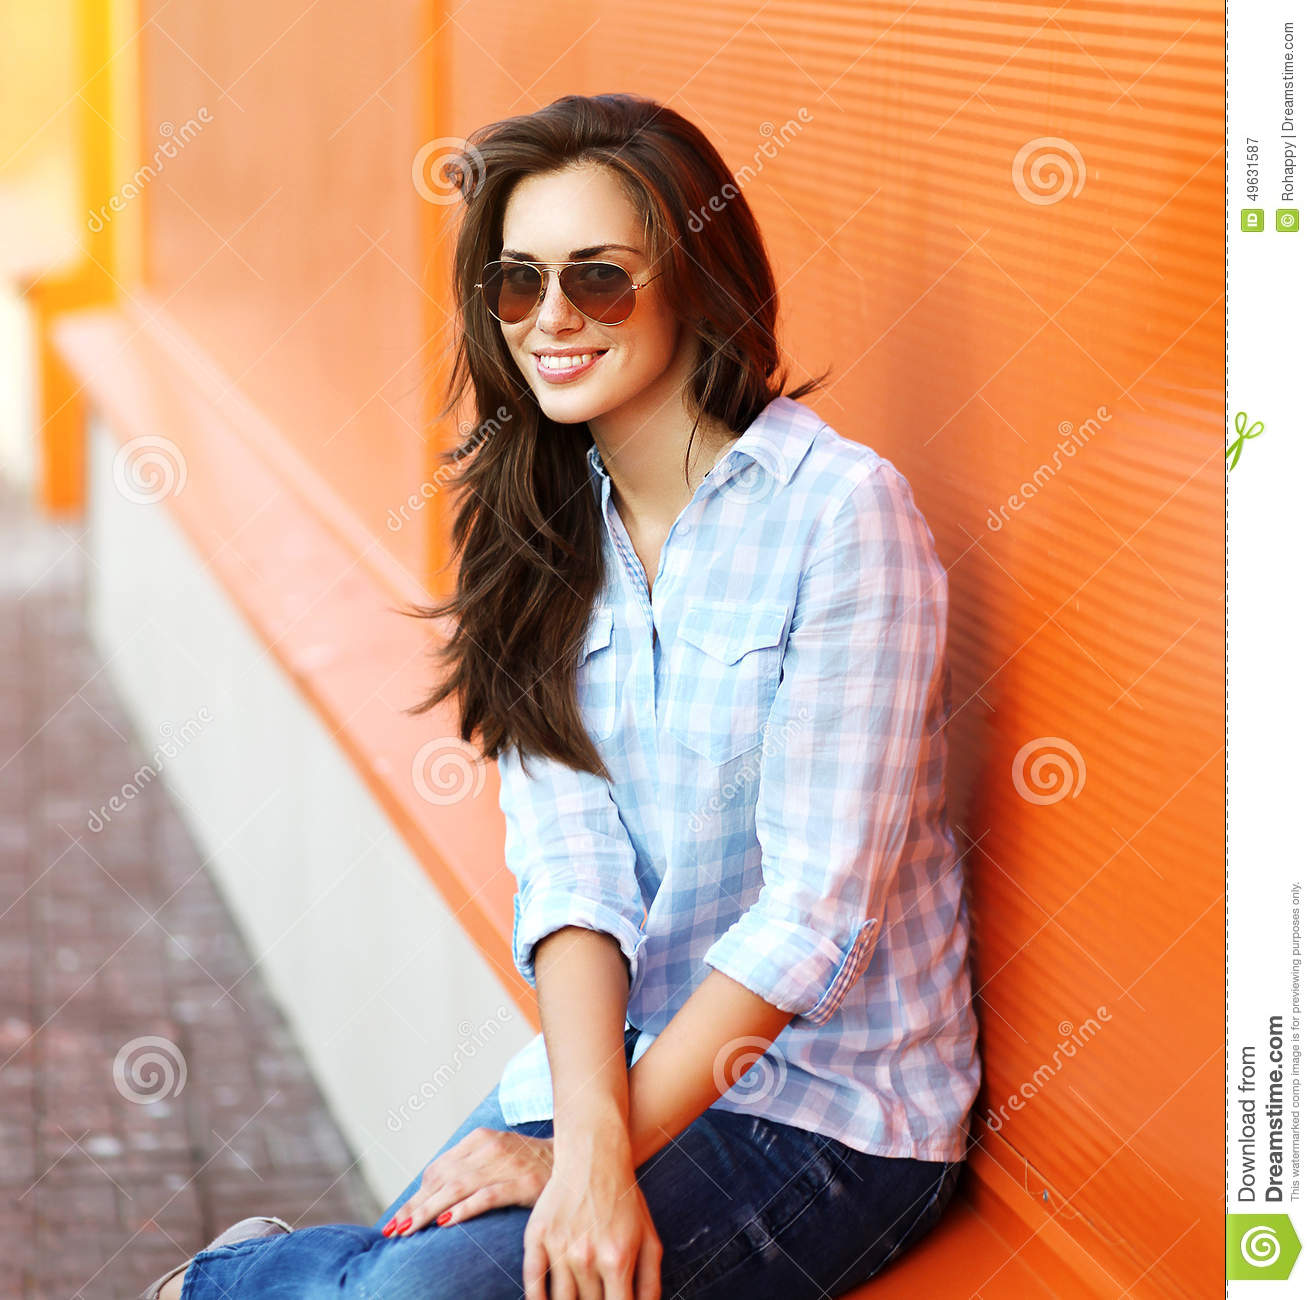 Summer, fashion and people concept - portrait modern woman